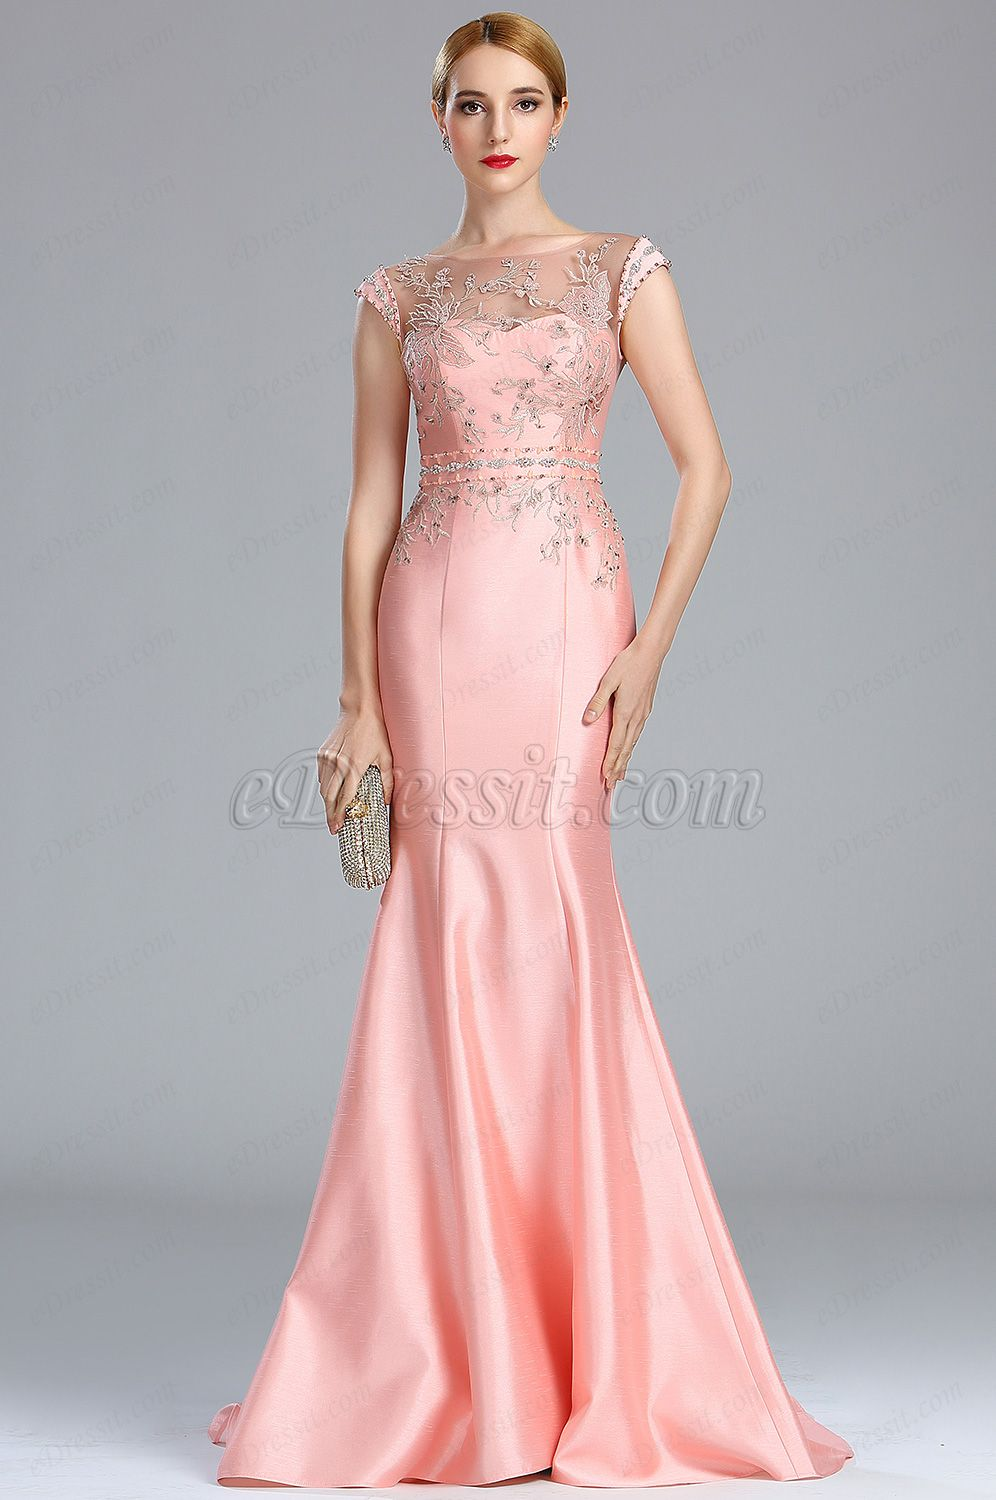 28ecfeb7 Looking for low price but high quality eDressit Pink Sparkly Lace Beaded  Flower Girl Prom Dress (02173301)? eDressit.com can custom-made for you!